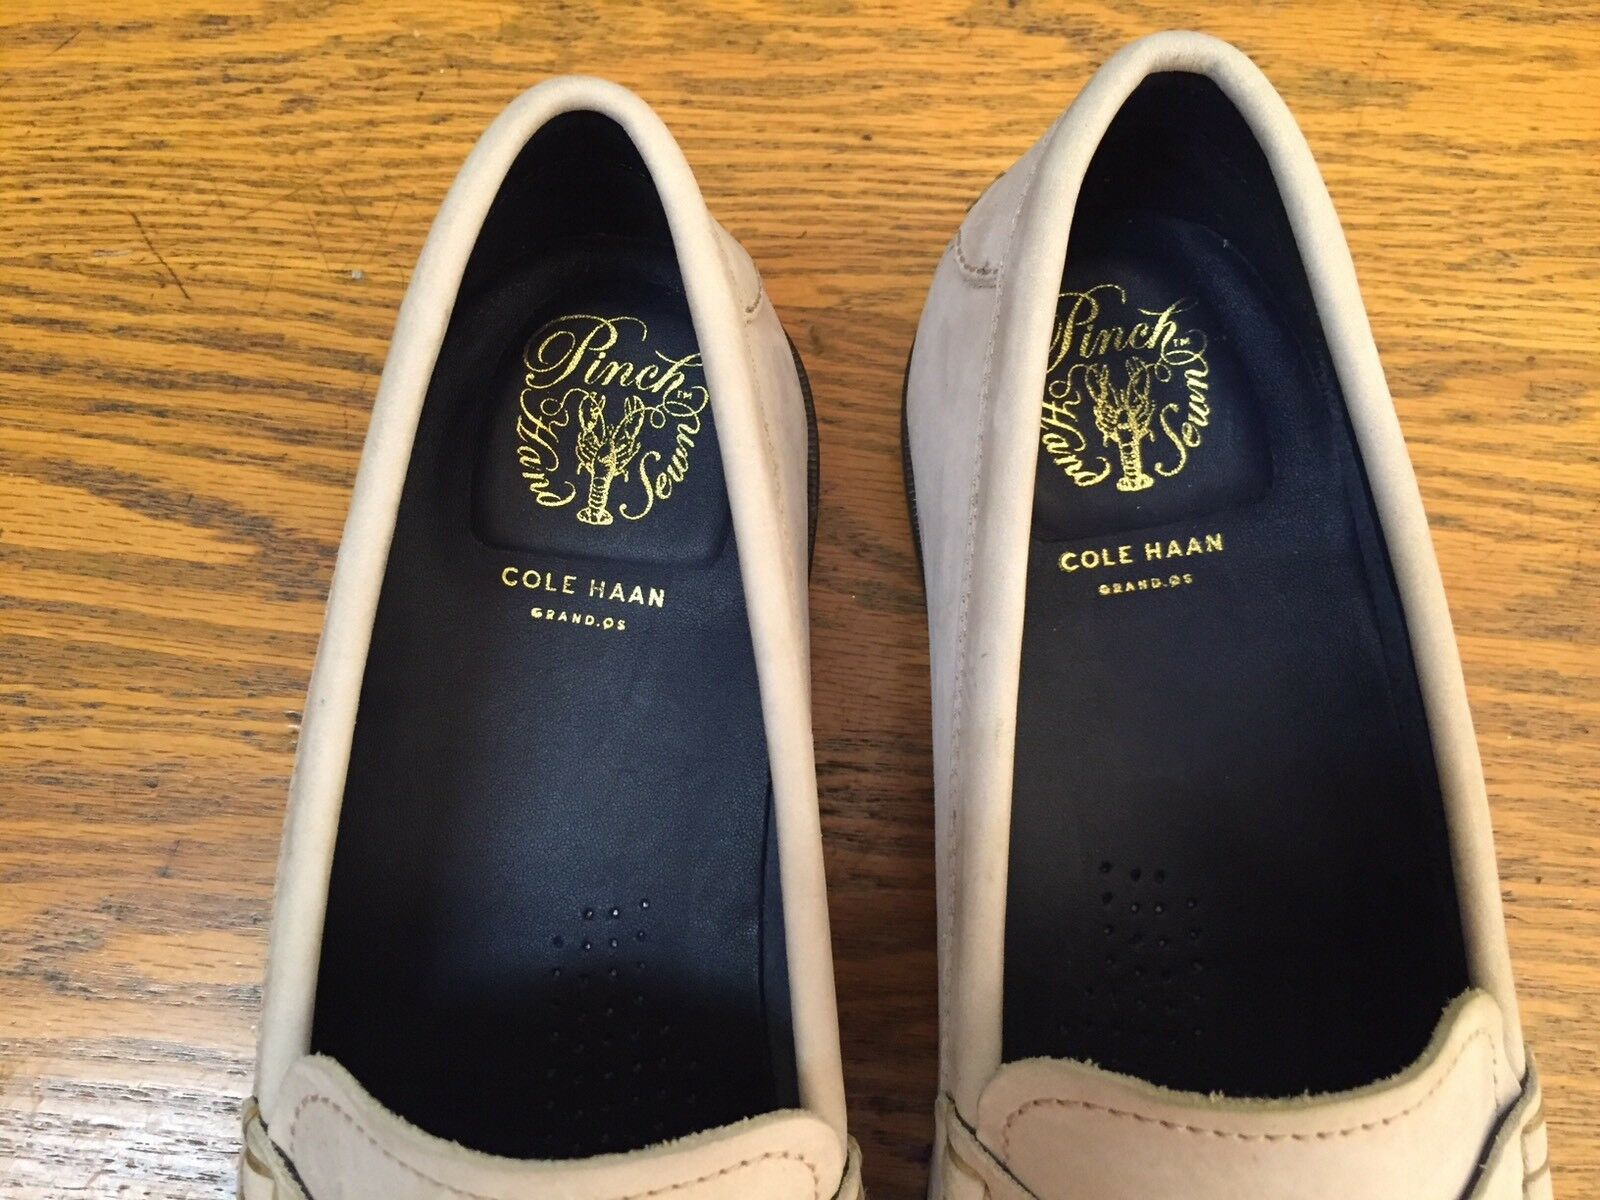 COLE HAAN Uomo PINCH FRIDAY FRIDAY FRIDAY TASSEL CONTEMPORARY LOAFERS C27599 NEW SIZE 11.5 ee176f